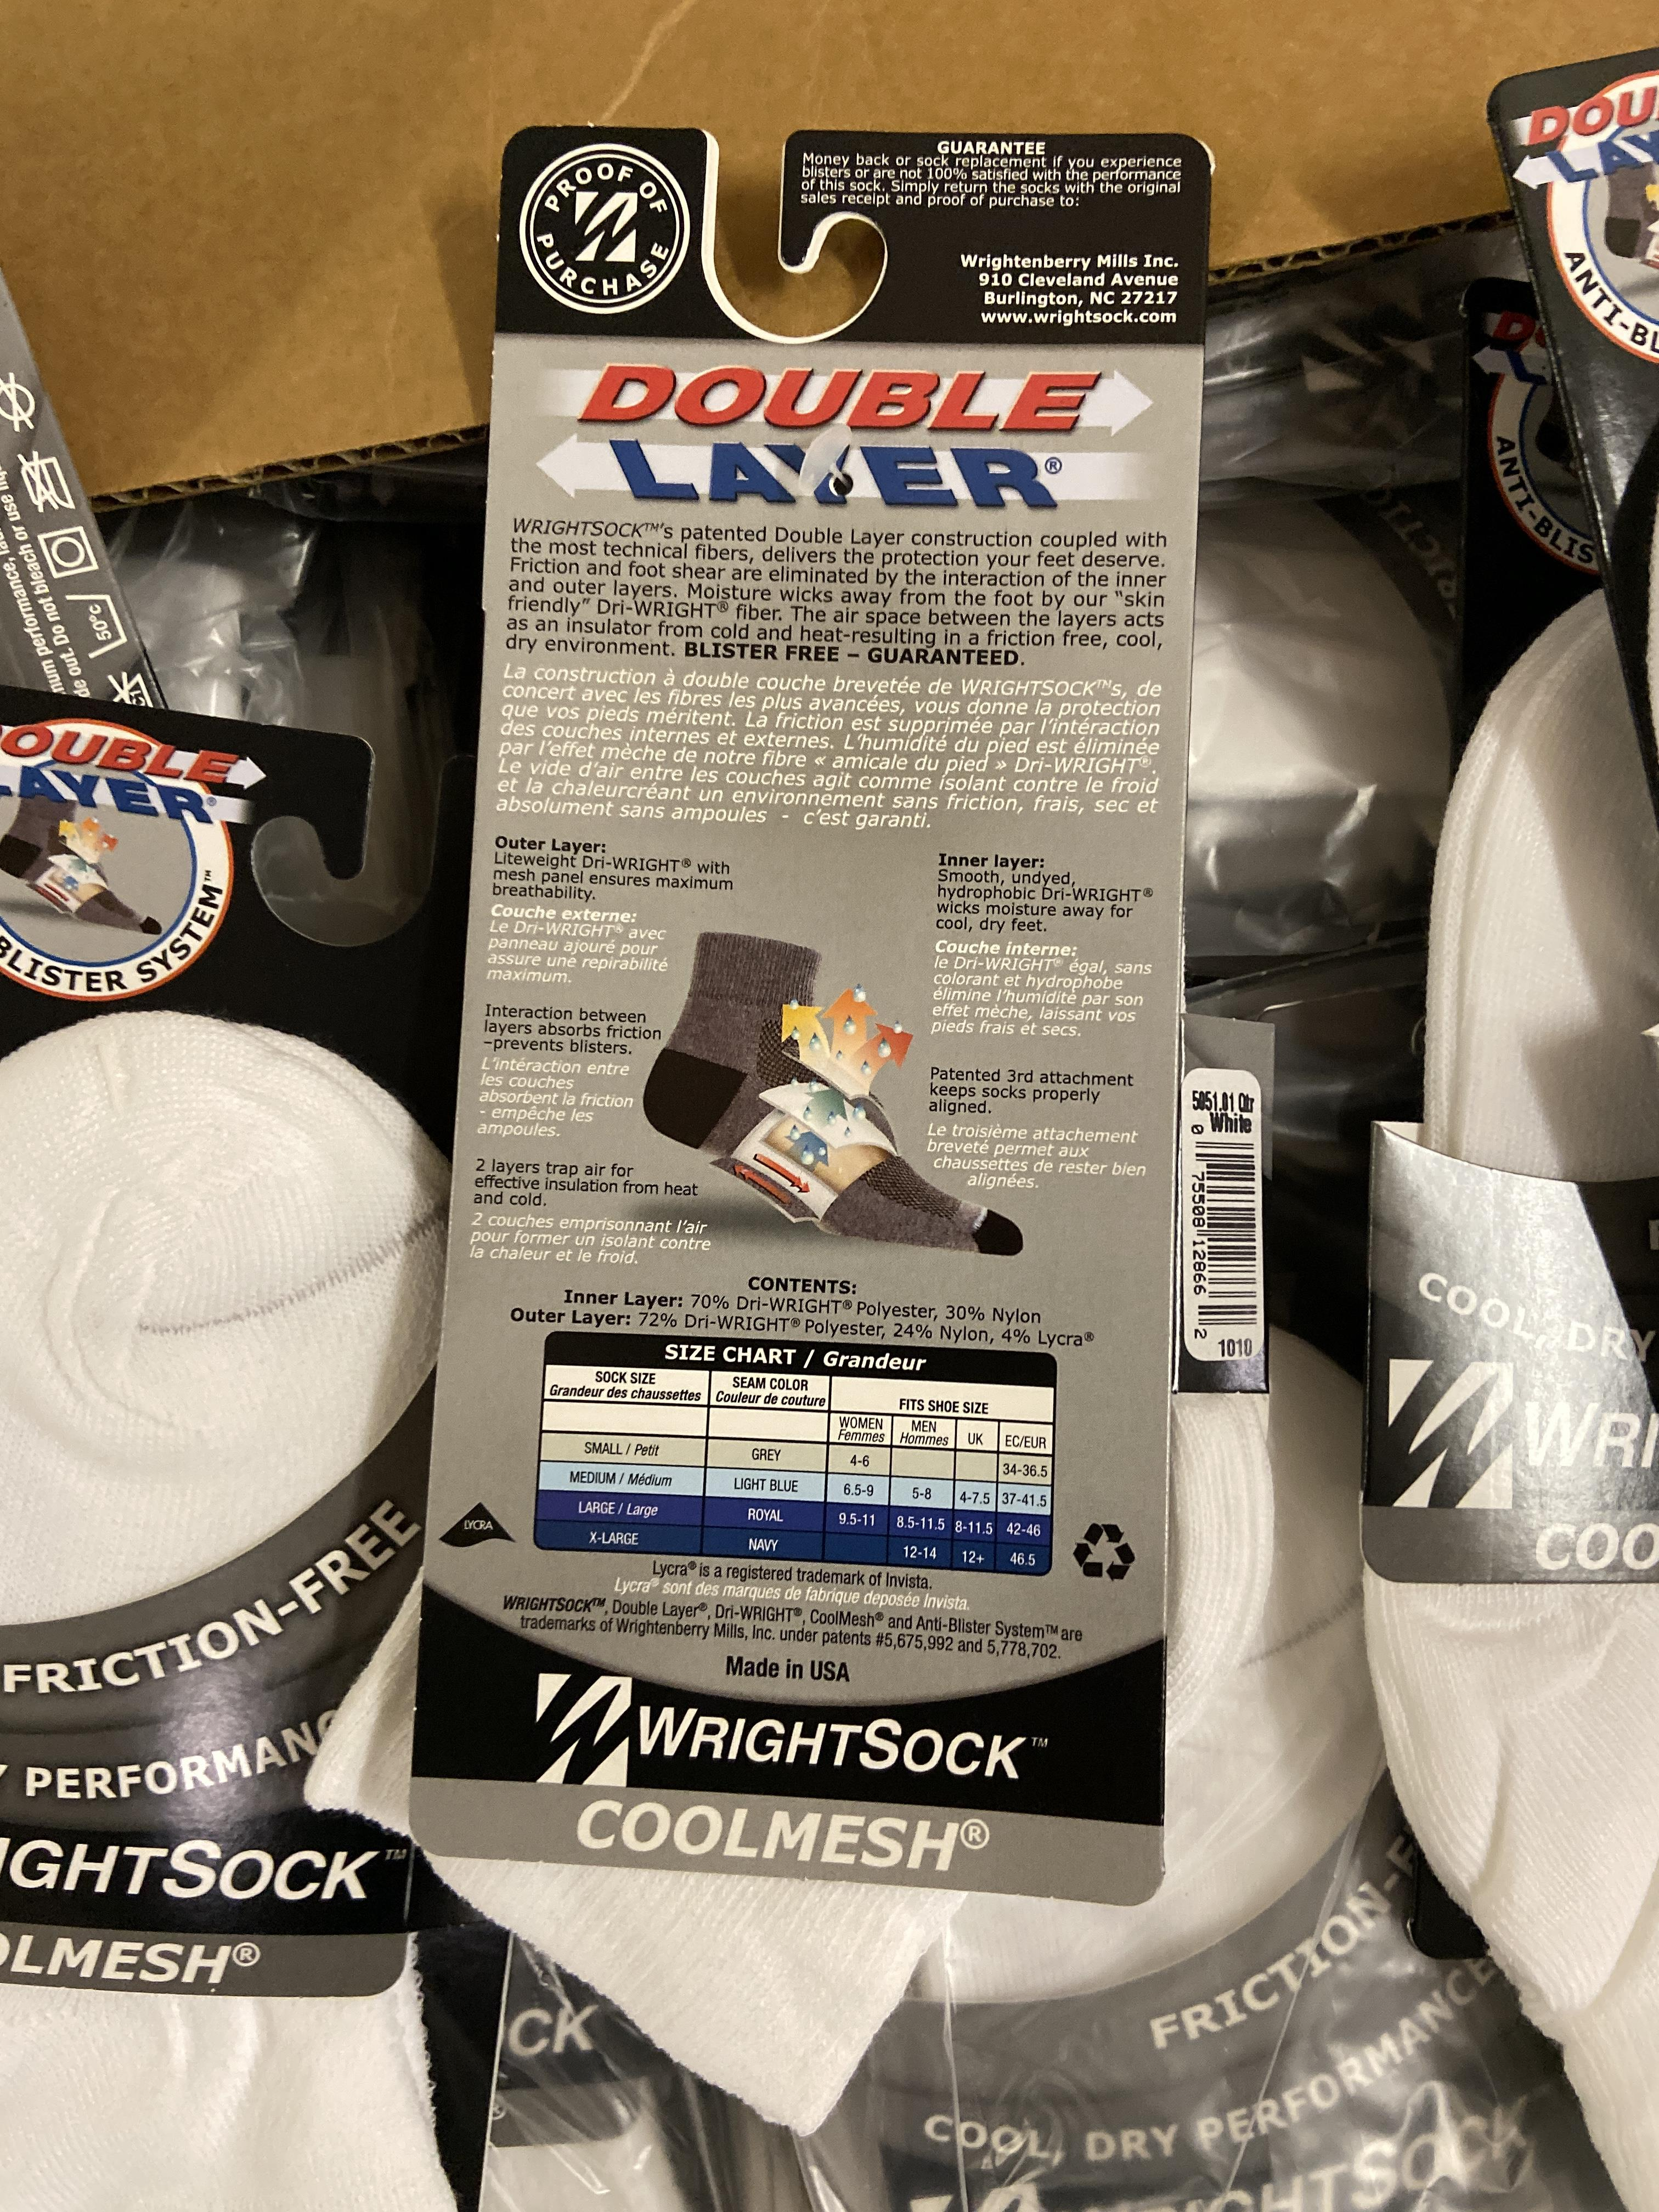 250+ packs of New Socks, Wrightsock Coolmesh, Double Layer, White - Image 3 of 3